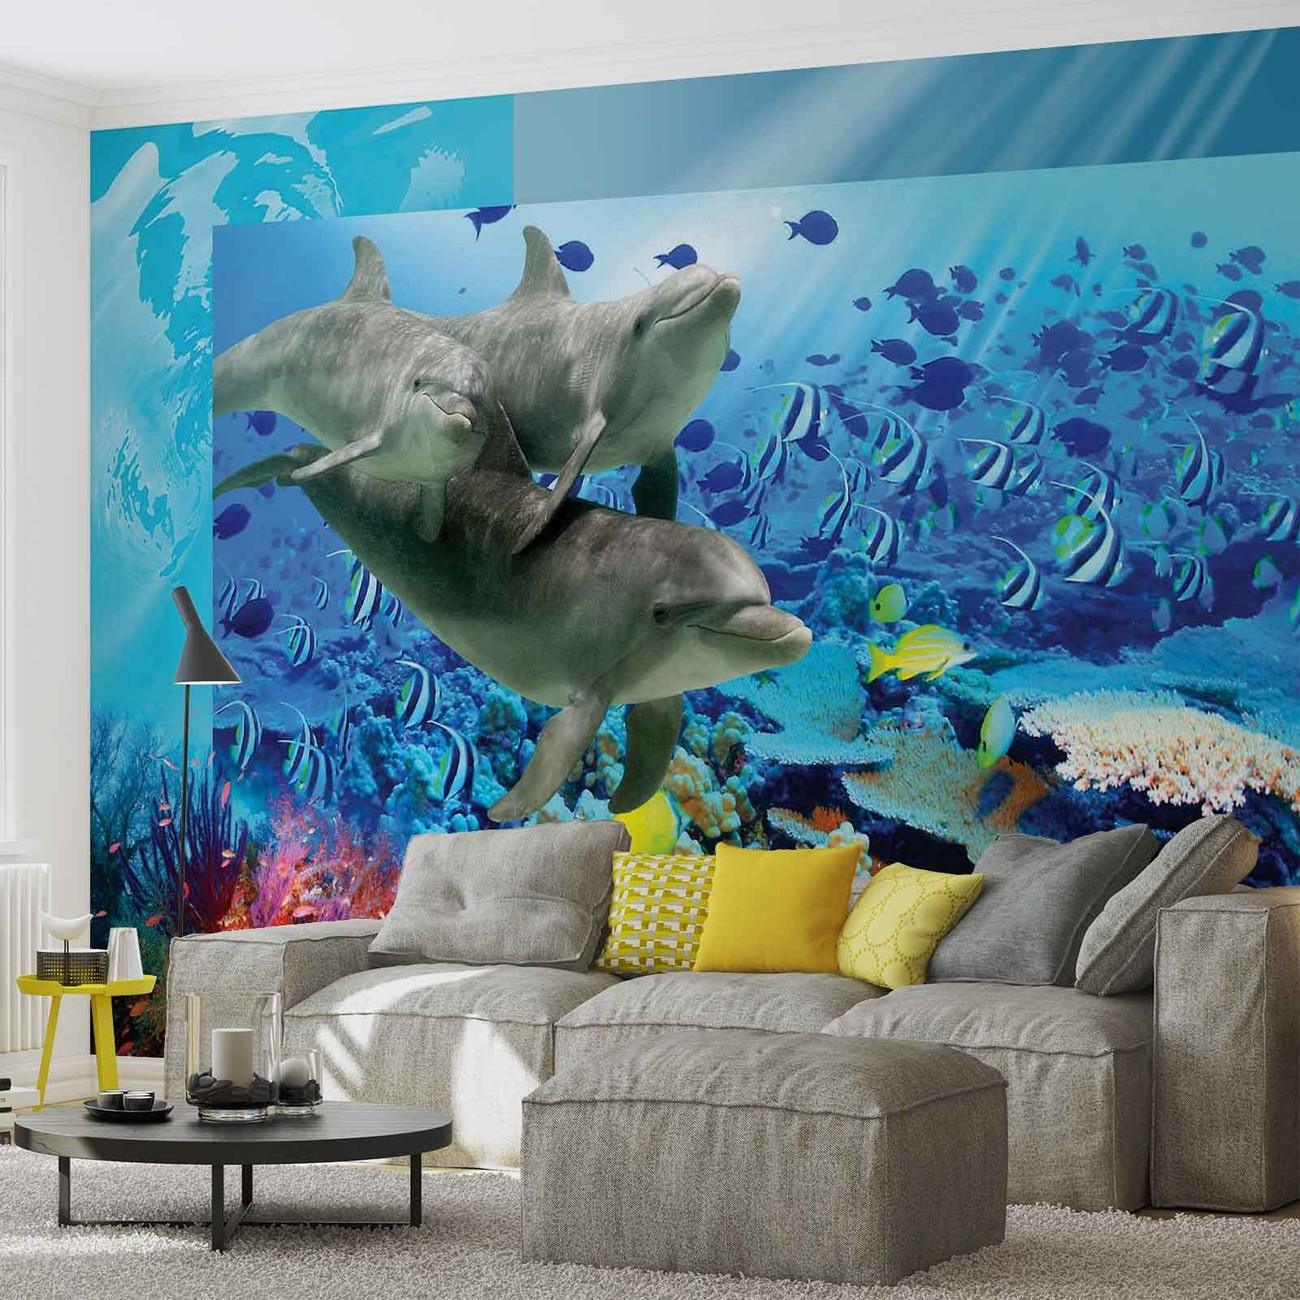 Dolphins tropical fish wall paper mural buy at europosters for Dolphins paradise wall mural